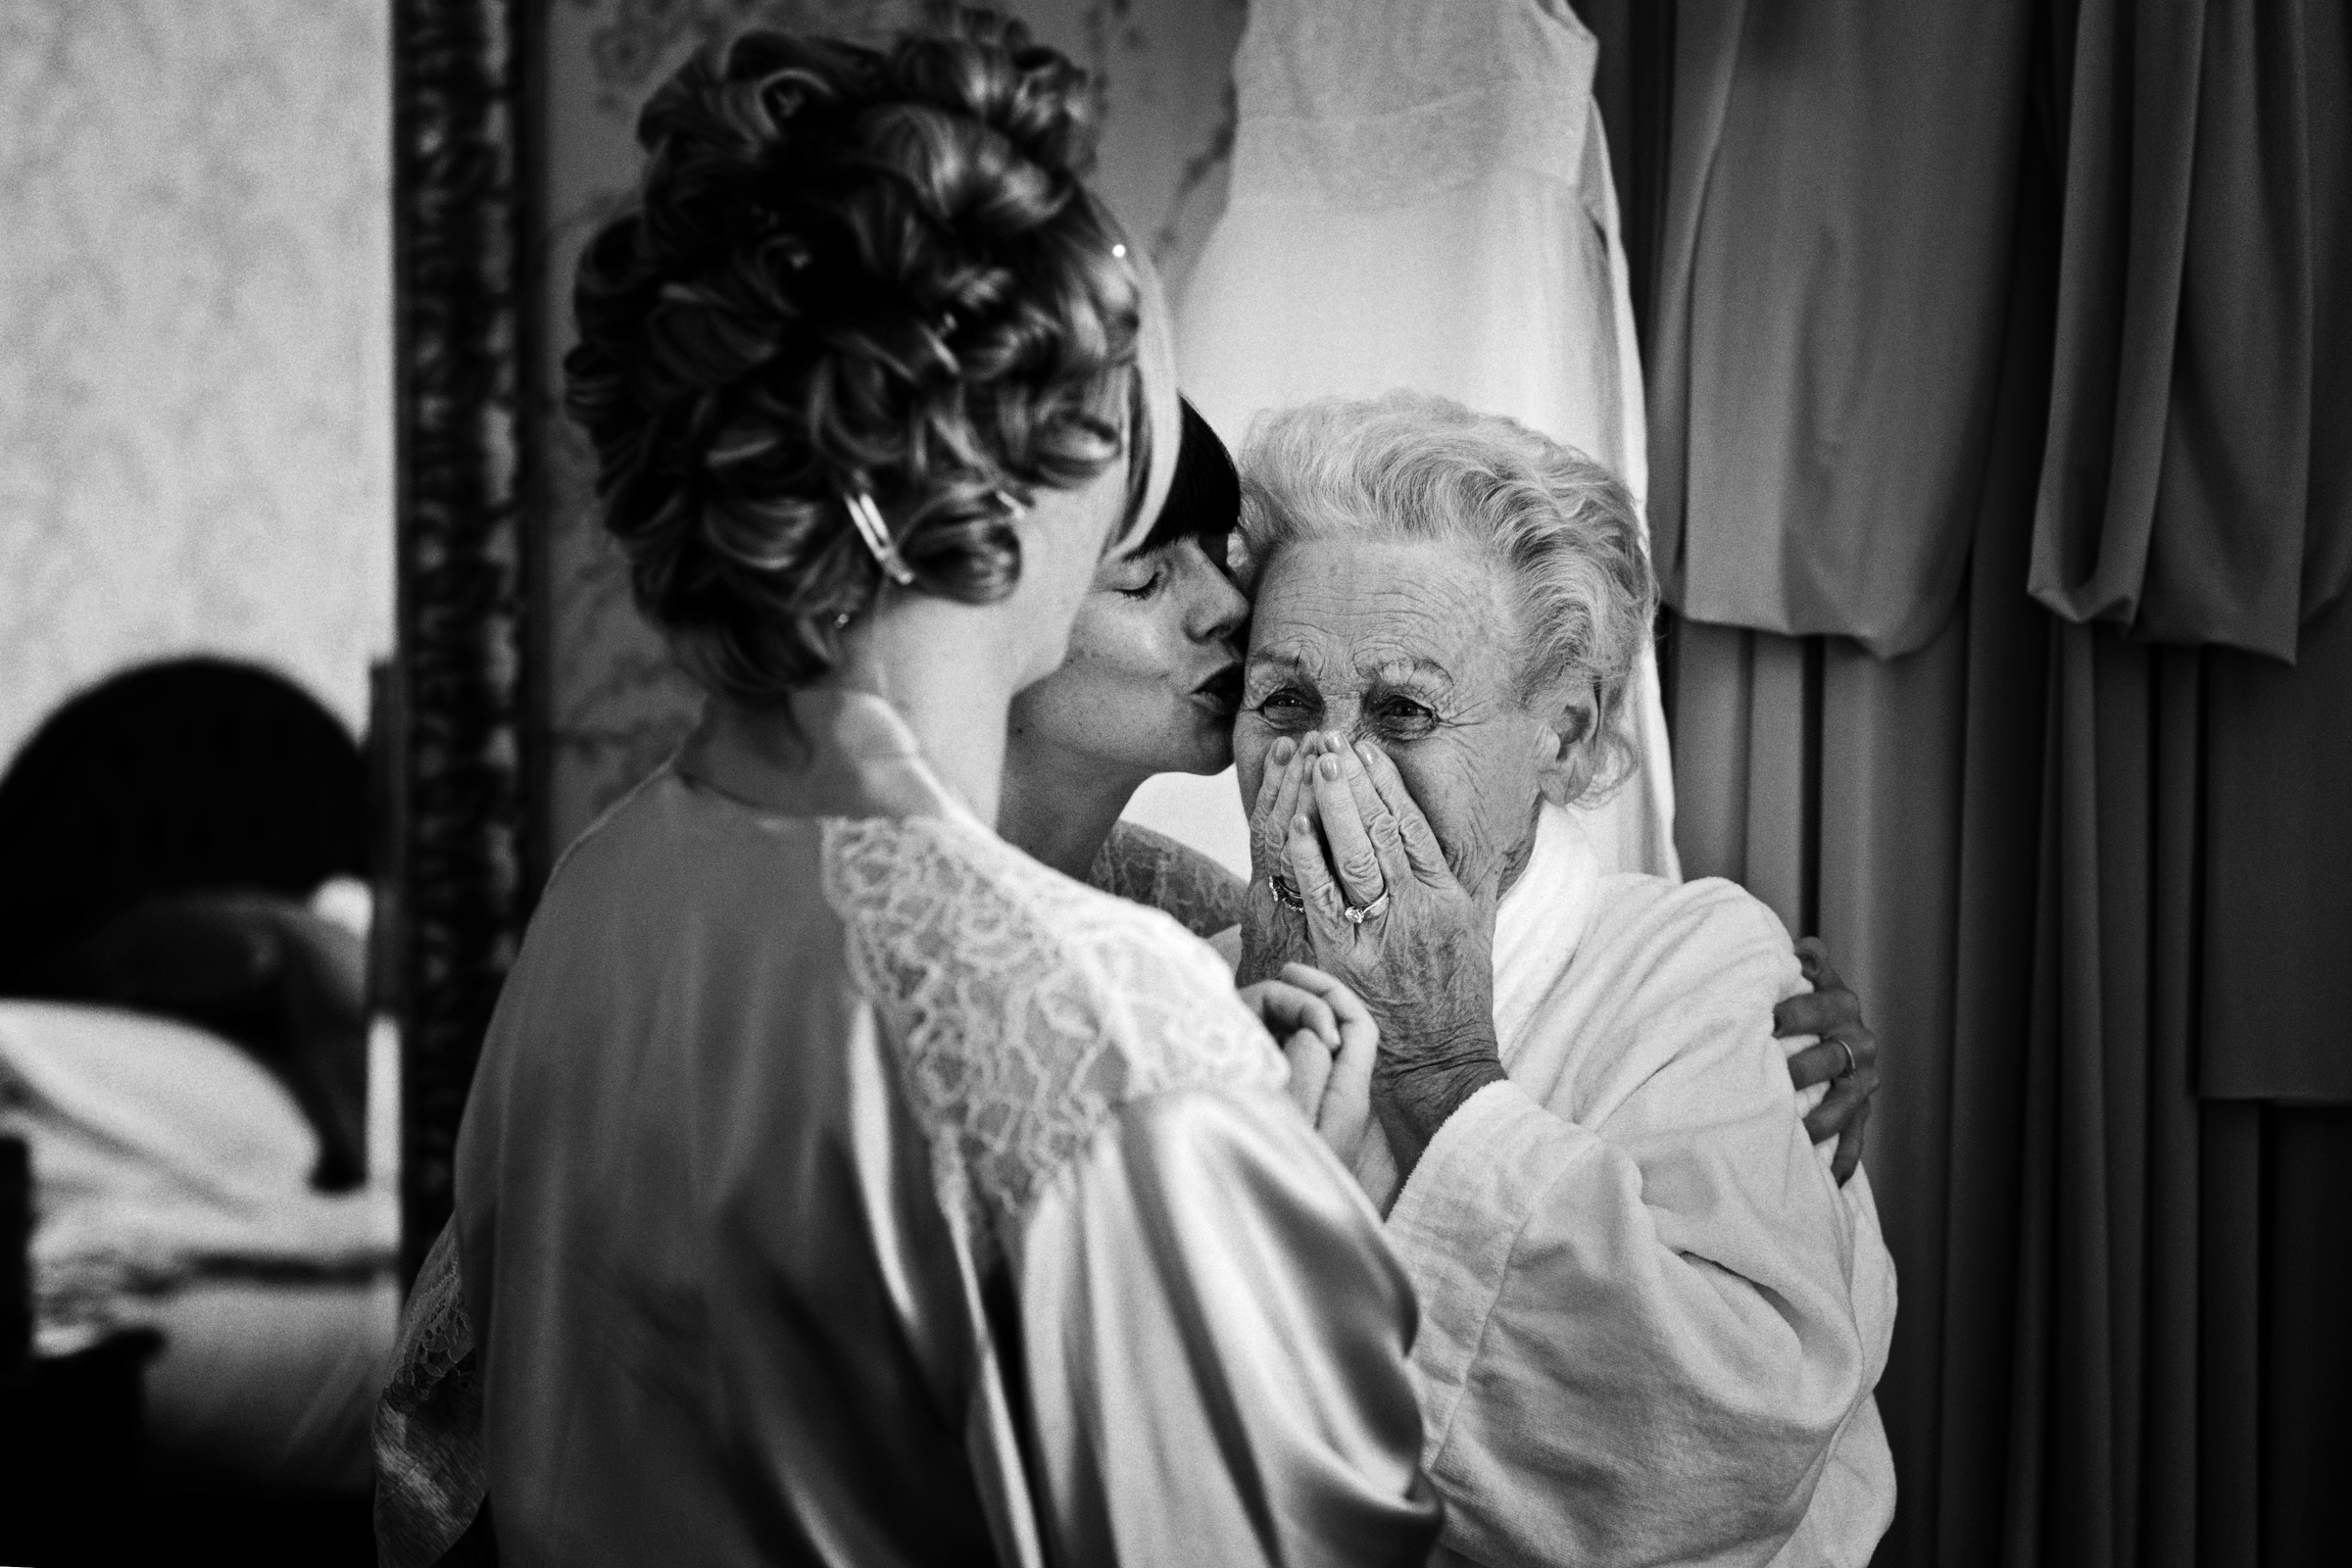 Grandmother weeps seeing bride in her wedding dress - photo by Jeff Ascough - London